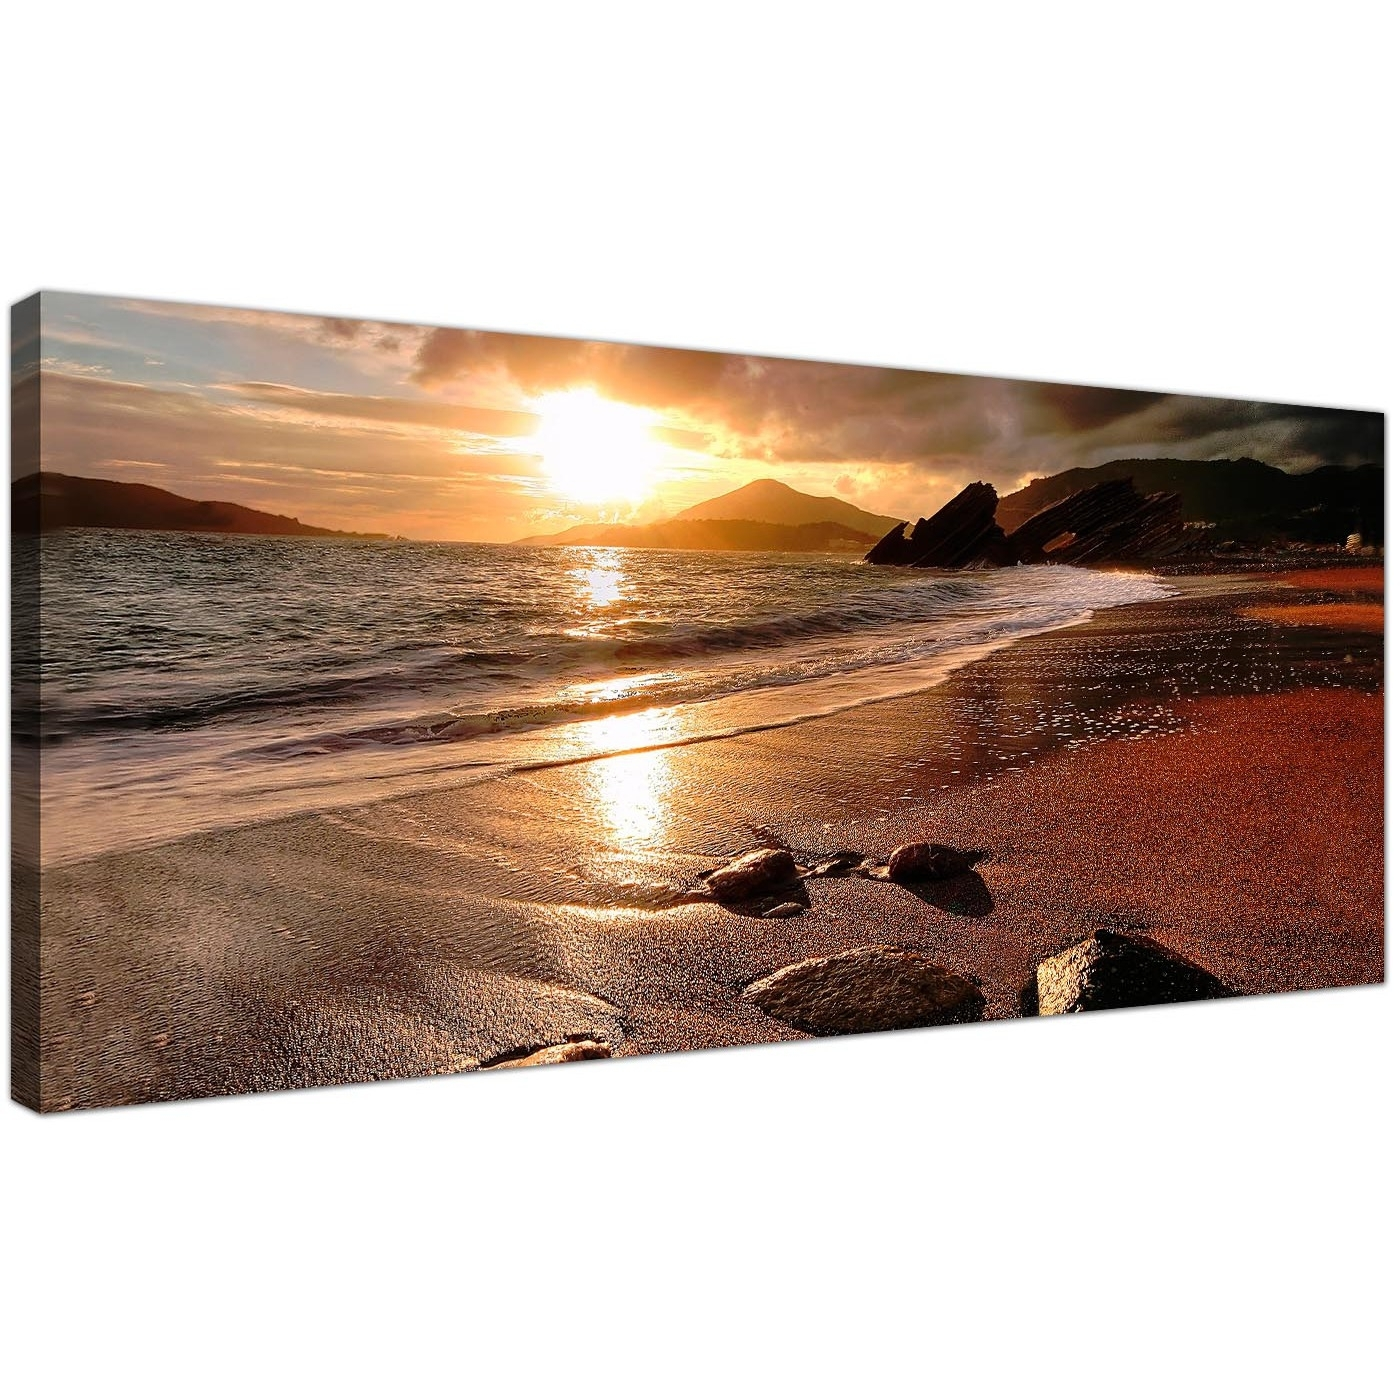 Wide Canvas Prints Of A Beach Sunset For Your Living Room With Regard To Most Recently Released Canvas Wall Art Beach Scenes (View 15 of 15)